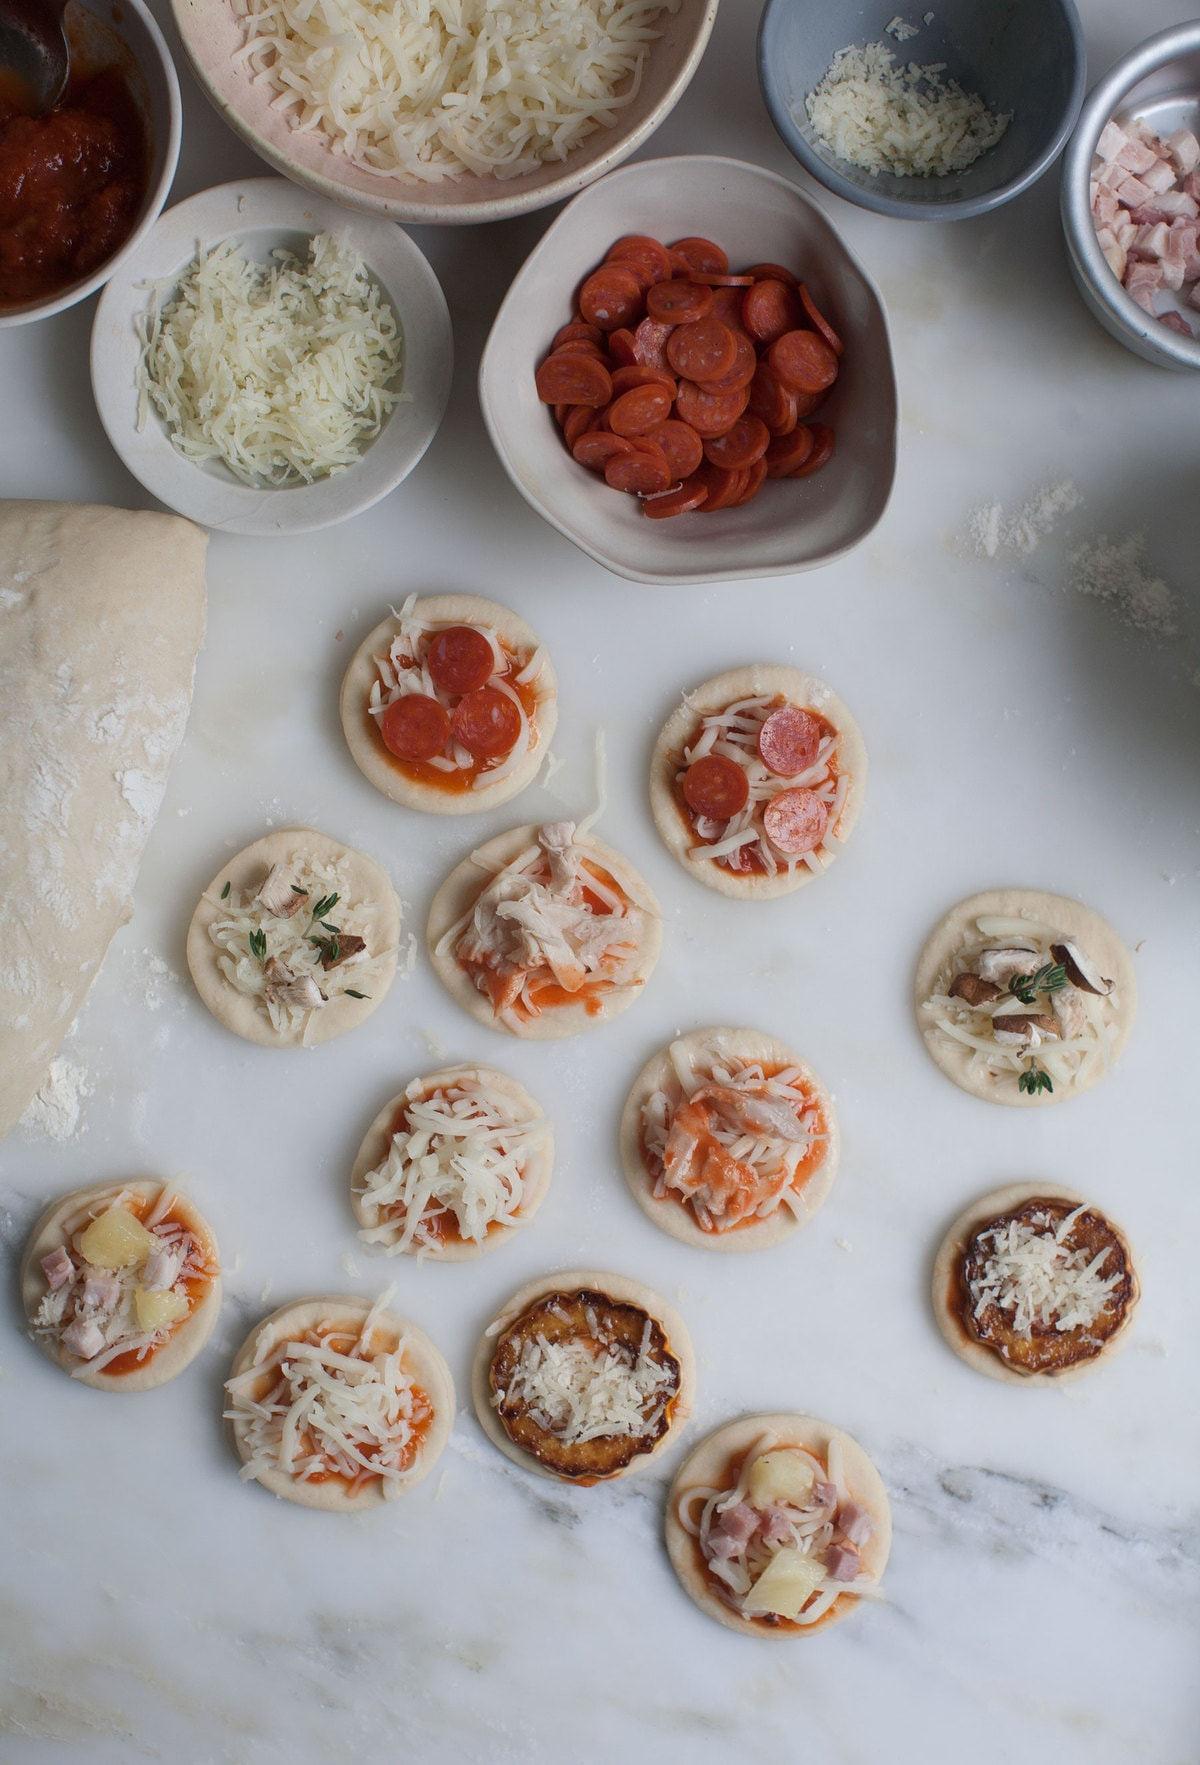 Pizzaception: Lil' Pizzas on Pizza